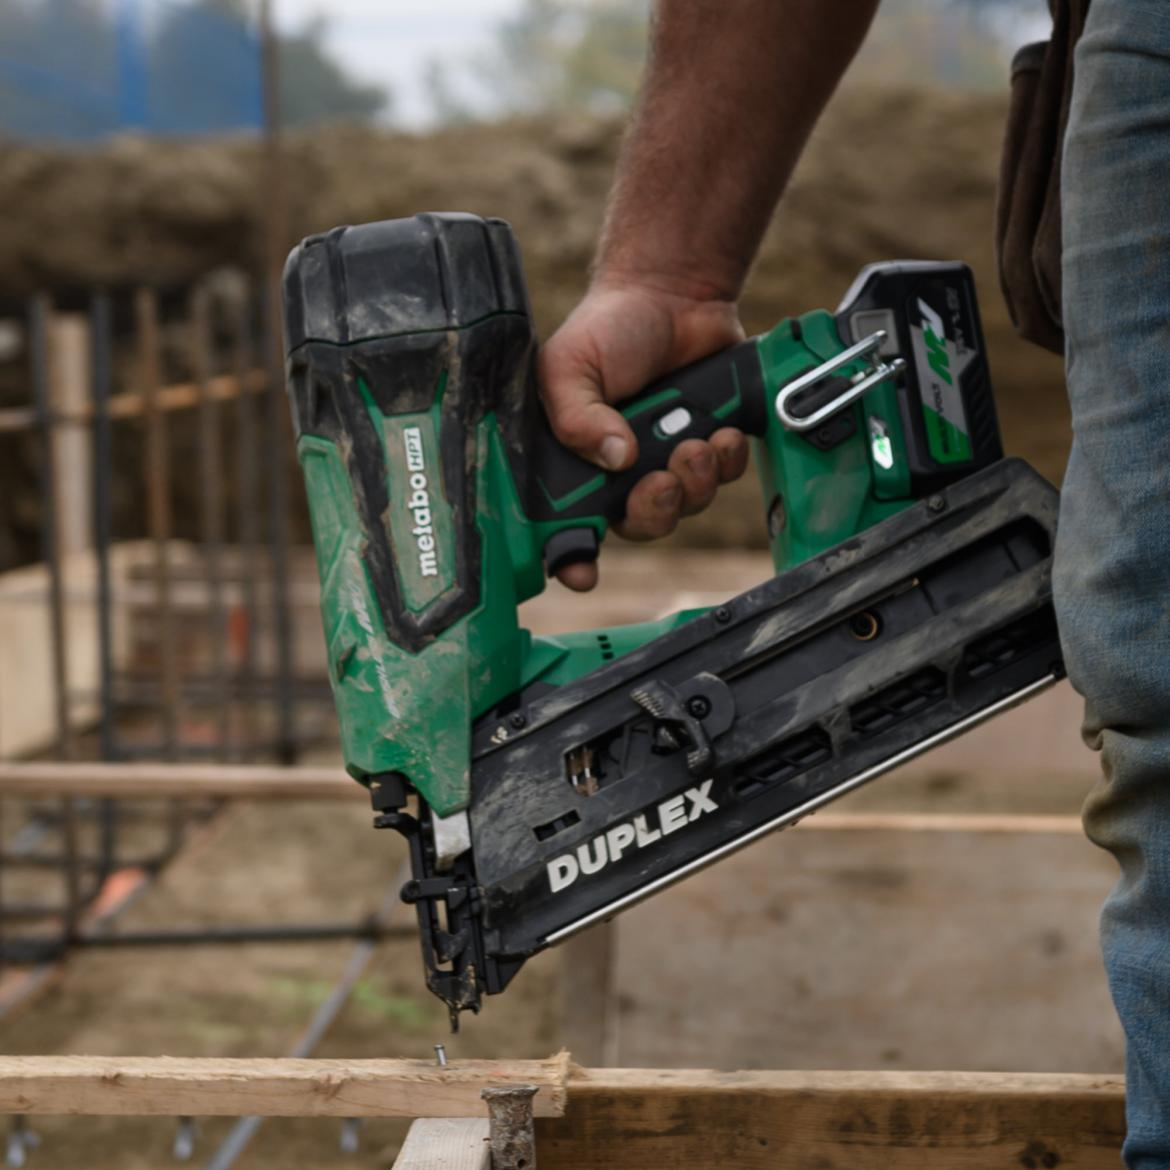 Metabo HPT MultiVolt cordless duplex nailer action